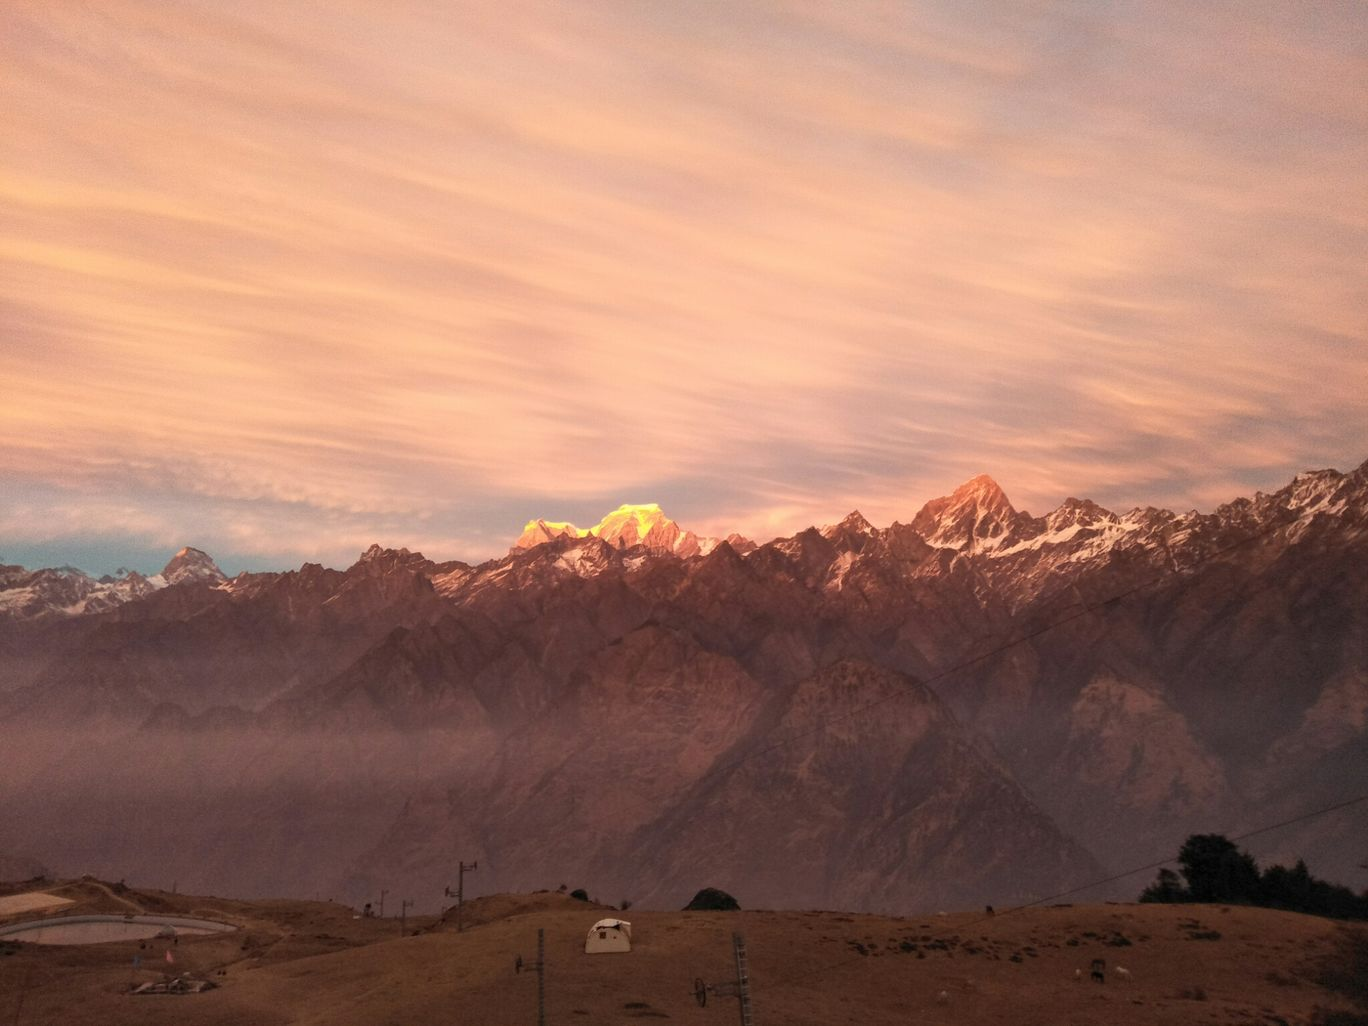 Photo of Auli Laga Joshimath By naman singh adhikari